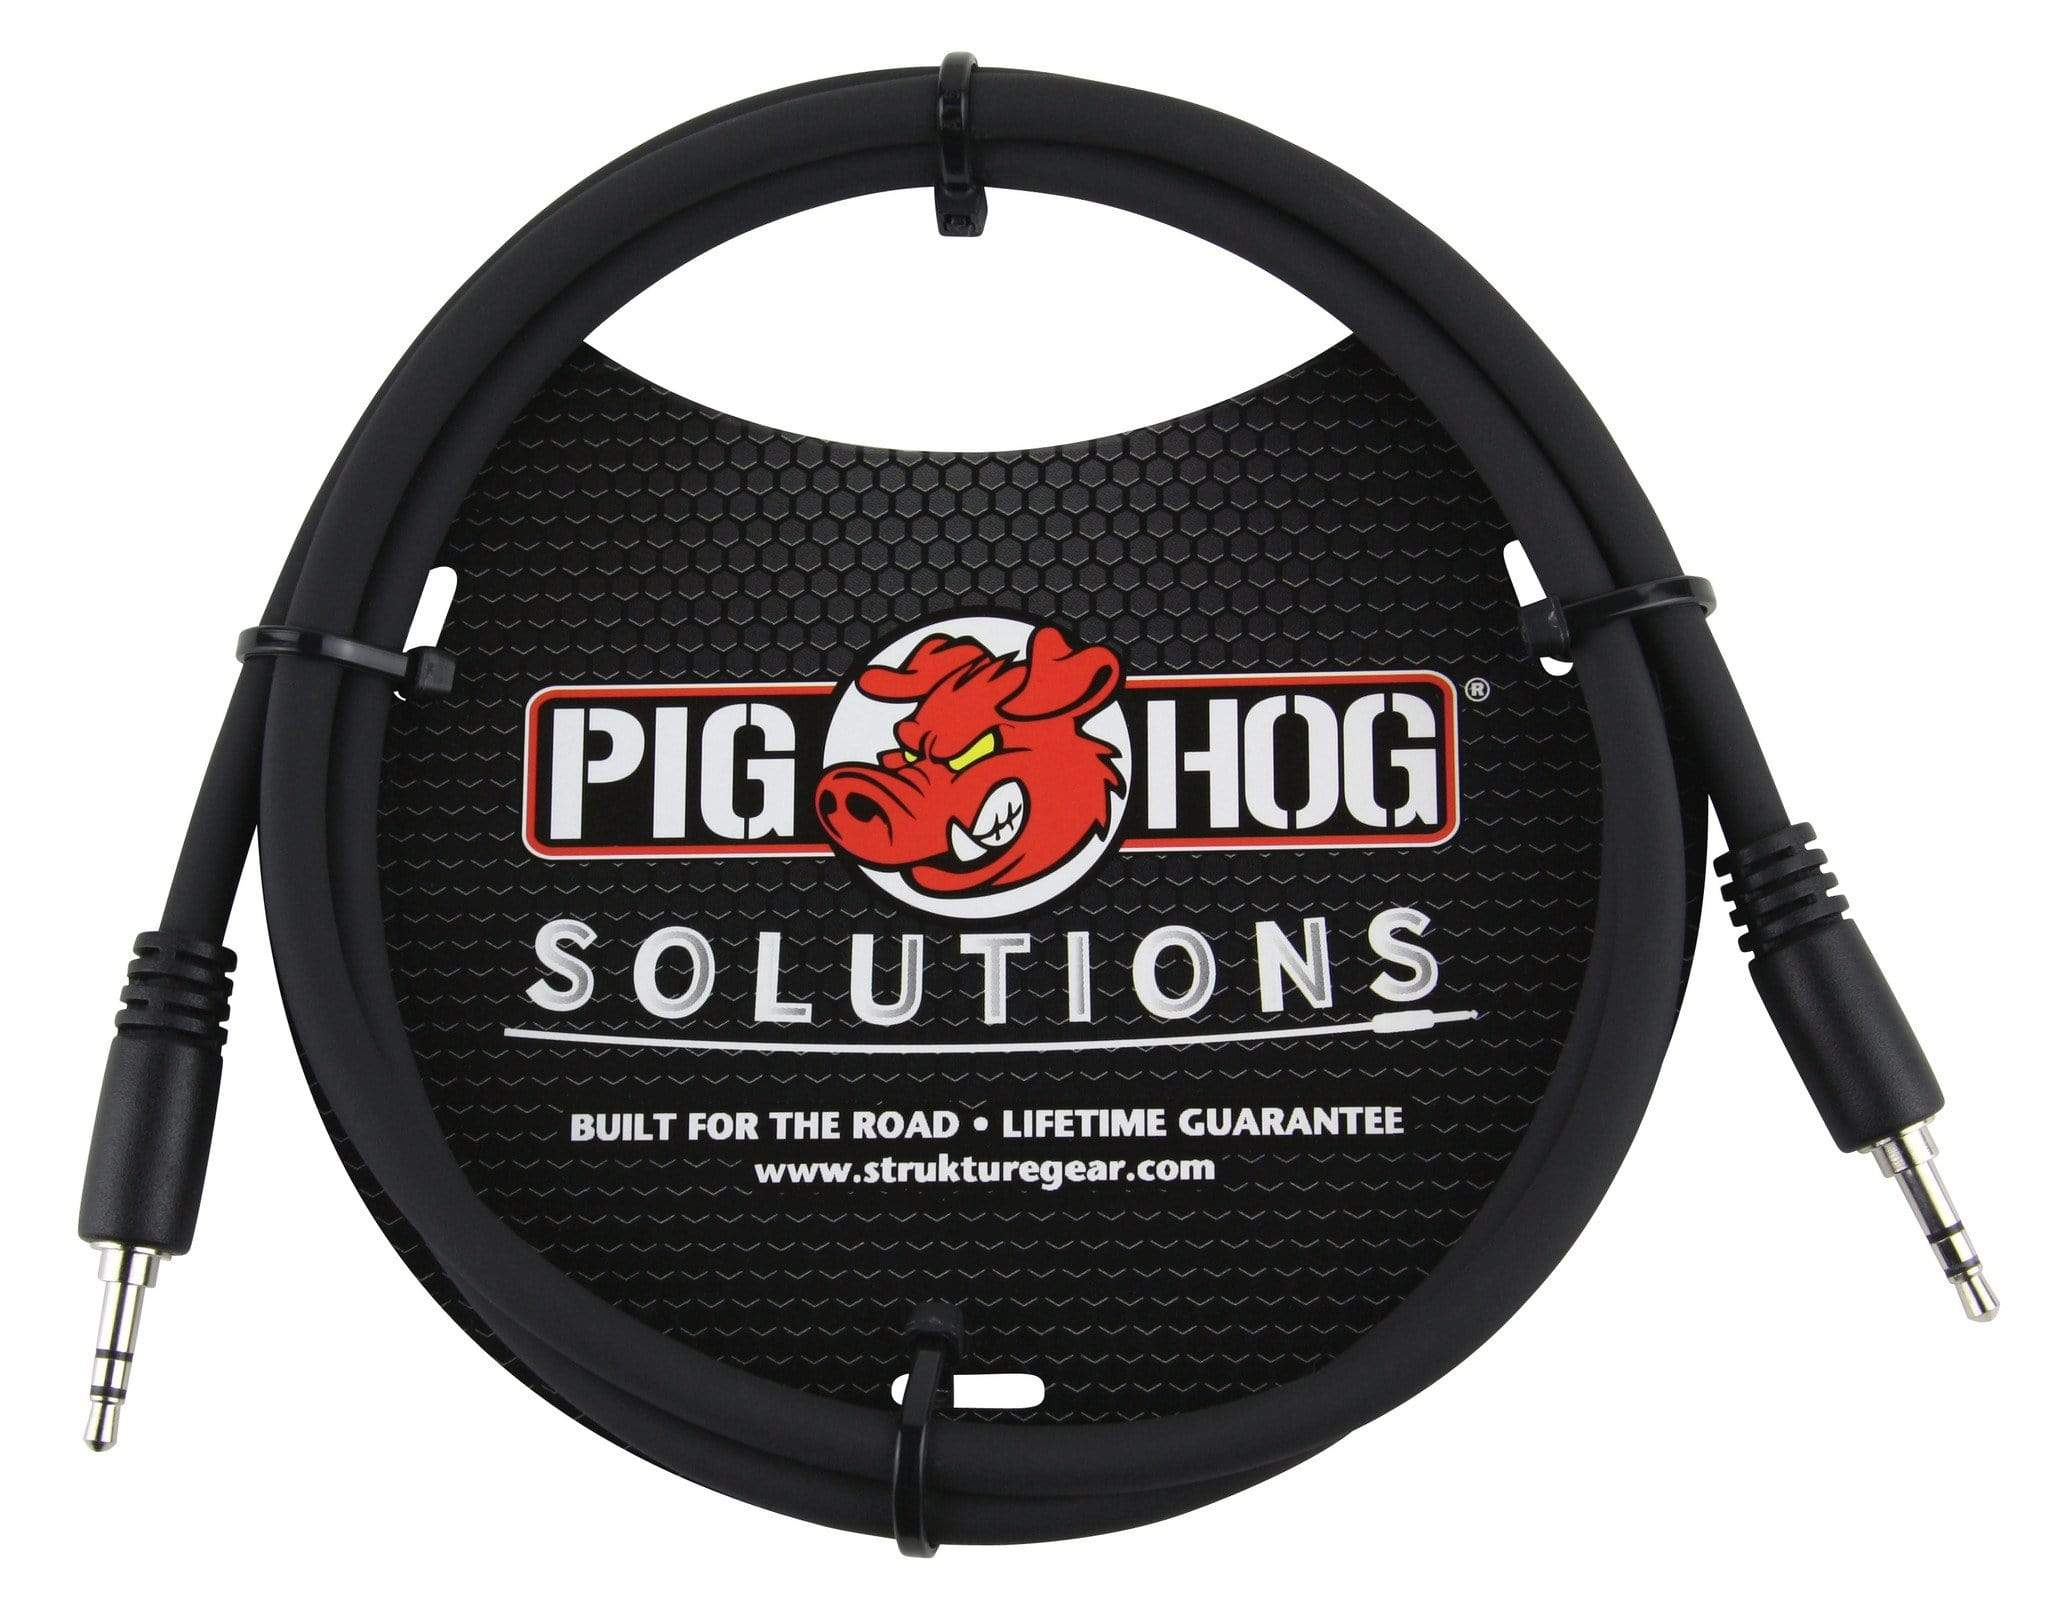 "PIG HOG INTERCONNECT CABLES Pig Hog 3 ft 3.5mm TRS Stereo Male Plug Cable 1/8"" Mini Patch Phone Pad Audio"